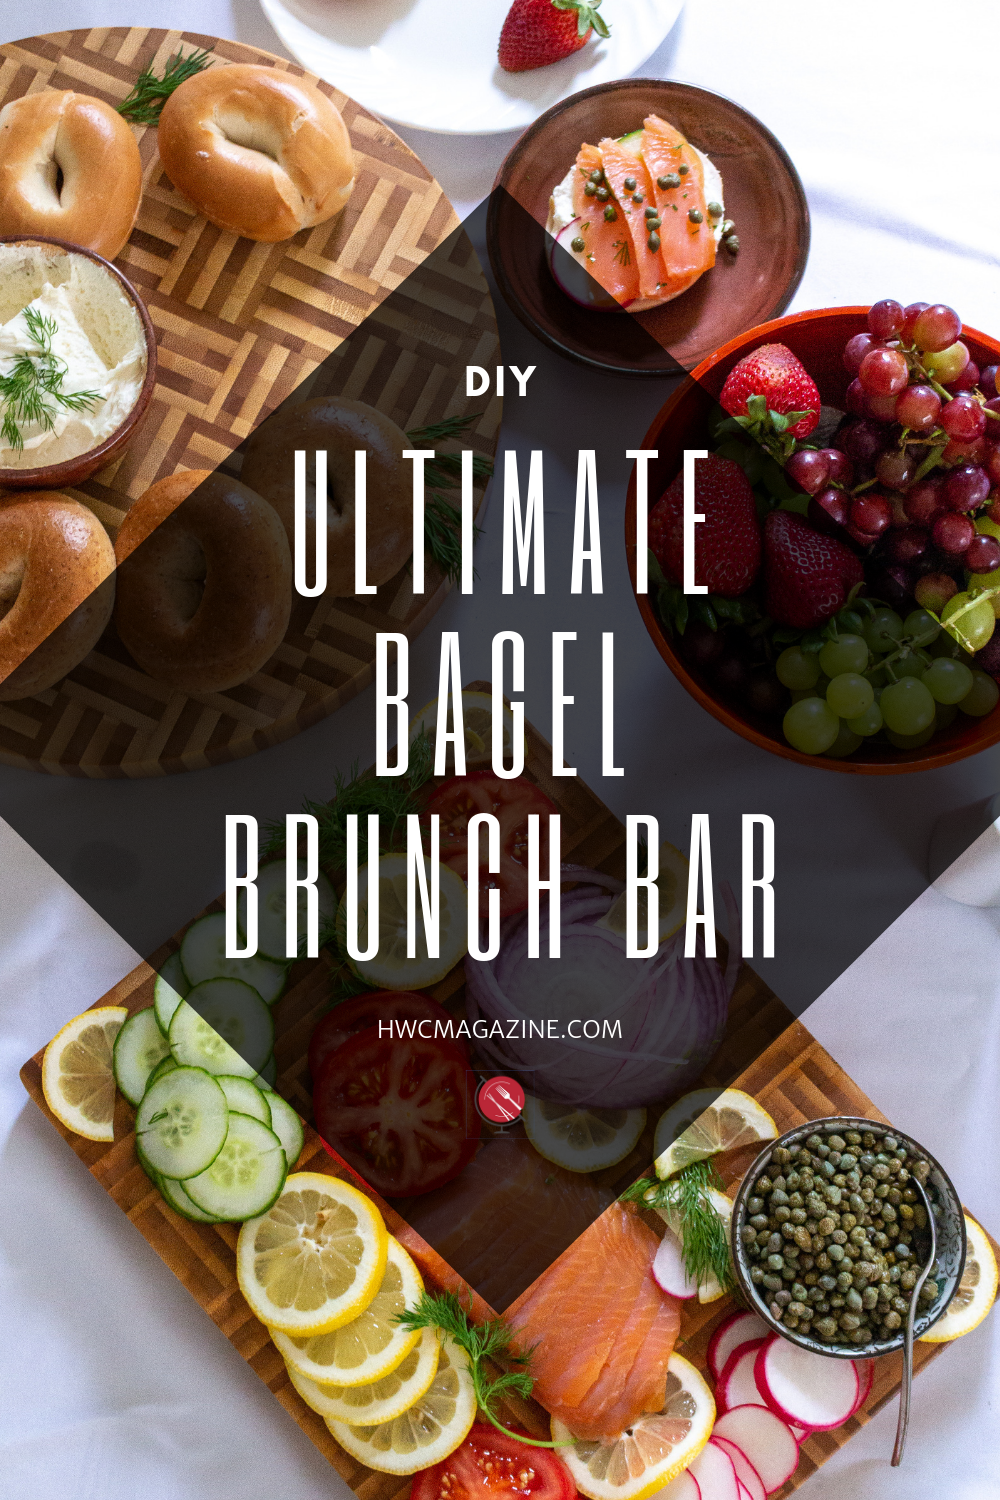 DIY Ultimate Bagel Bar Brunch / https://www.hwcmagazine.com